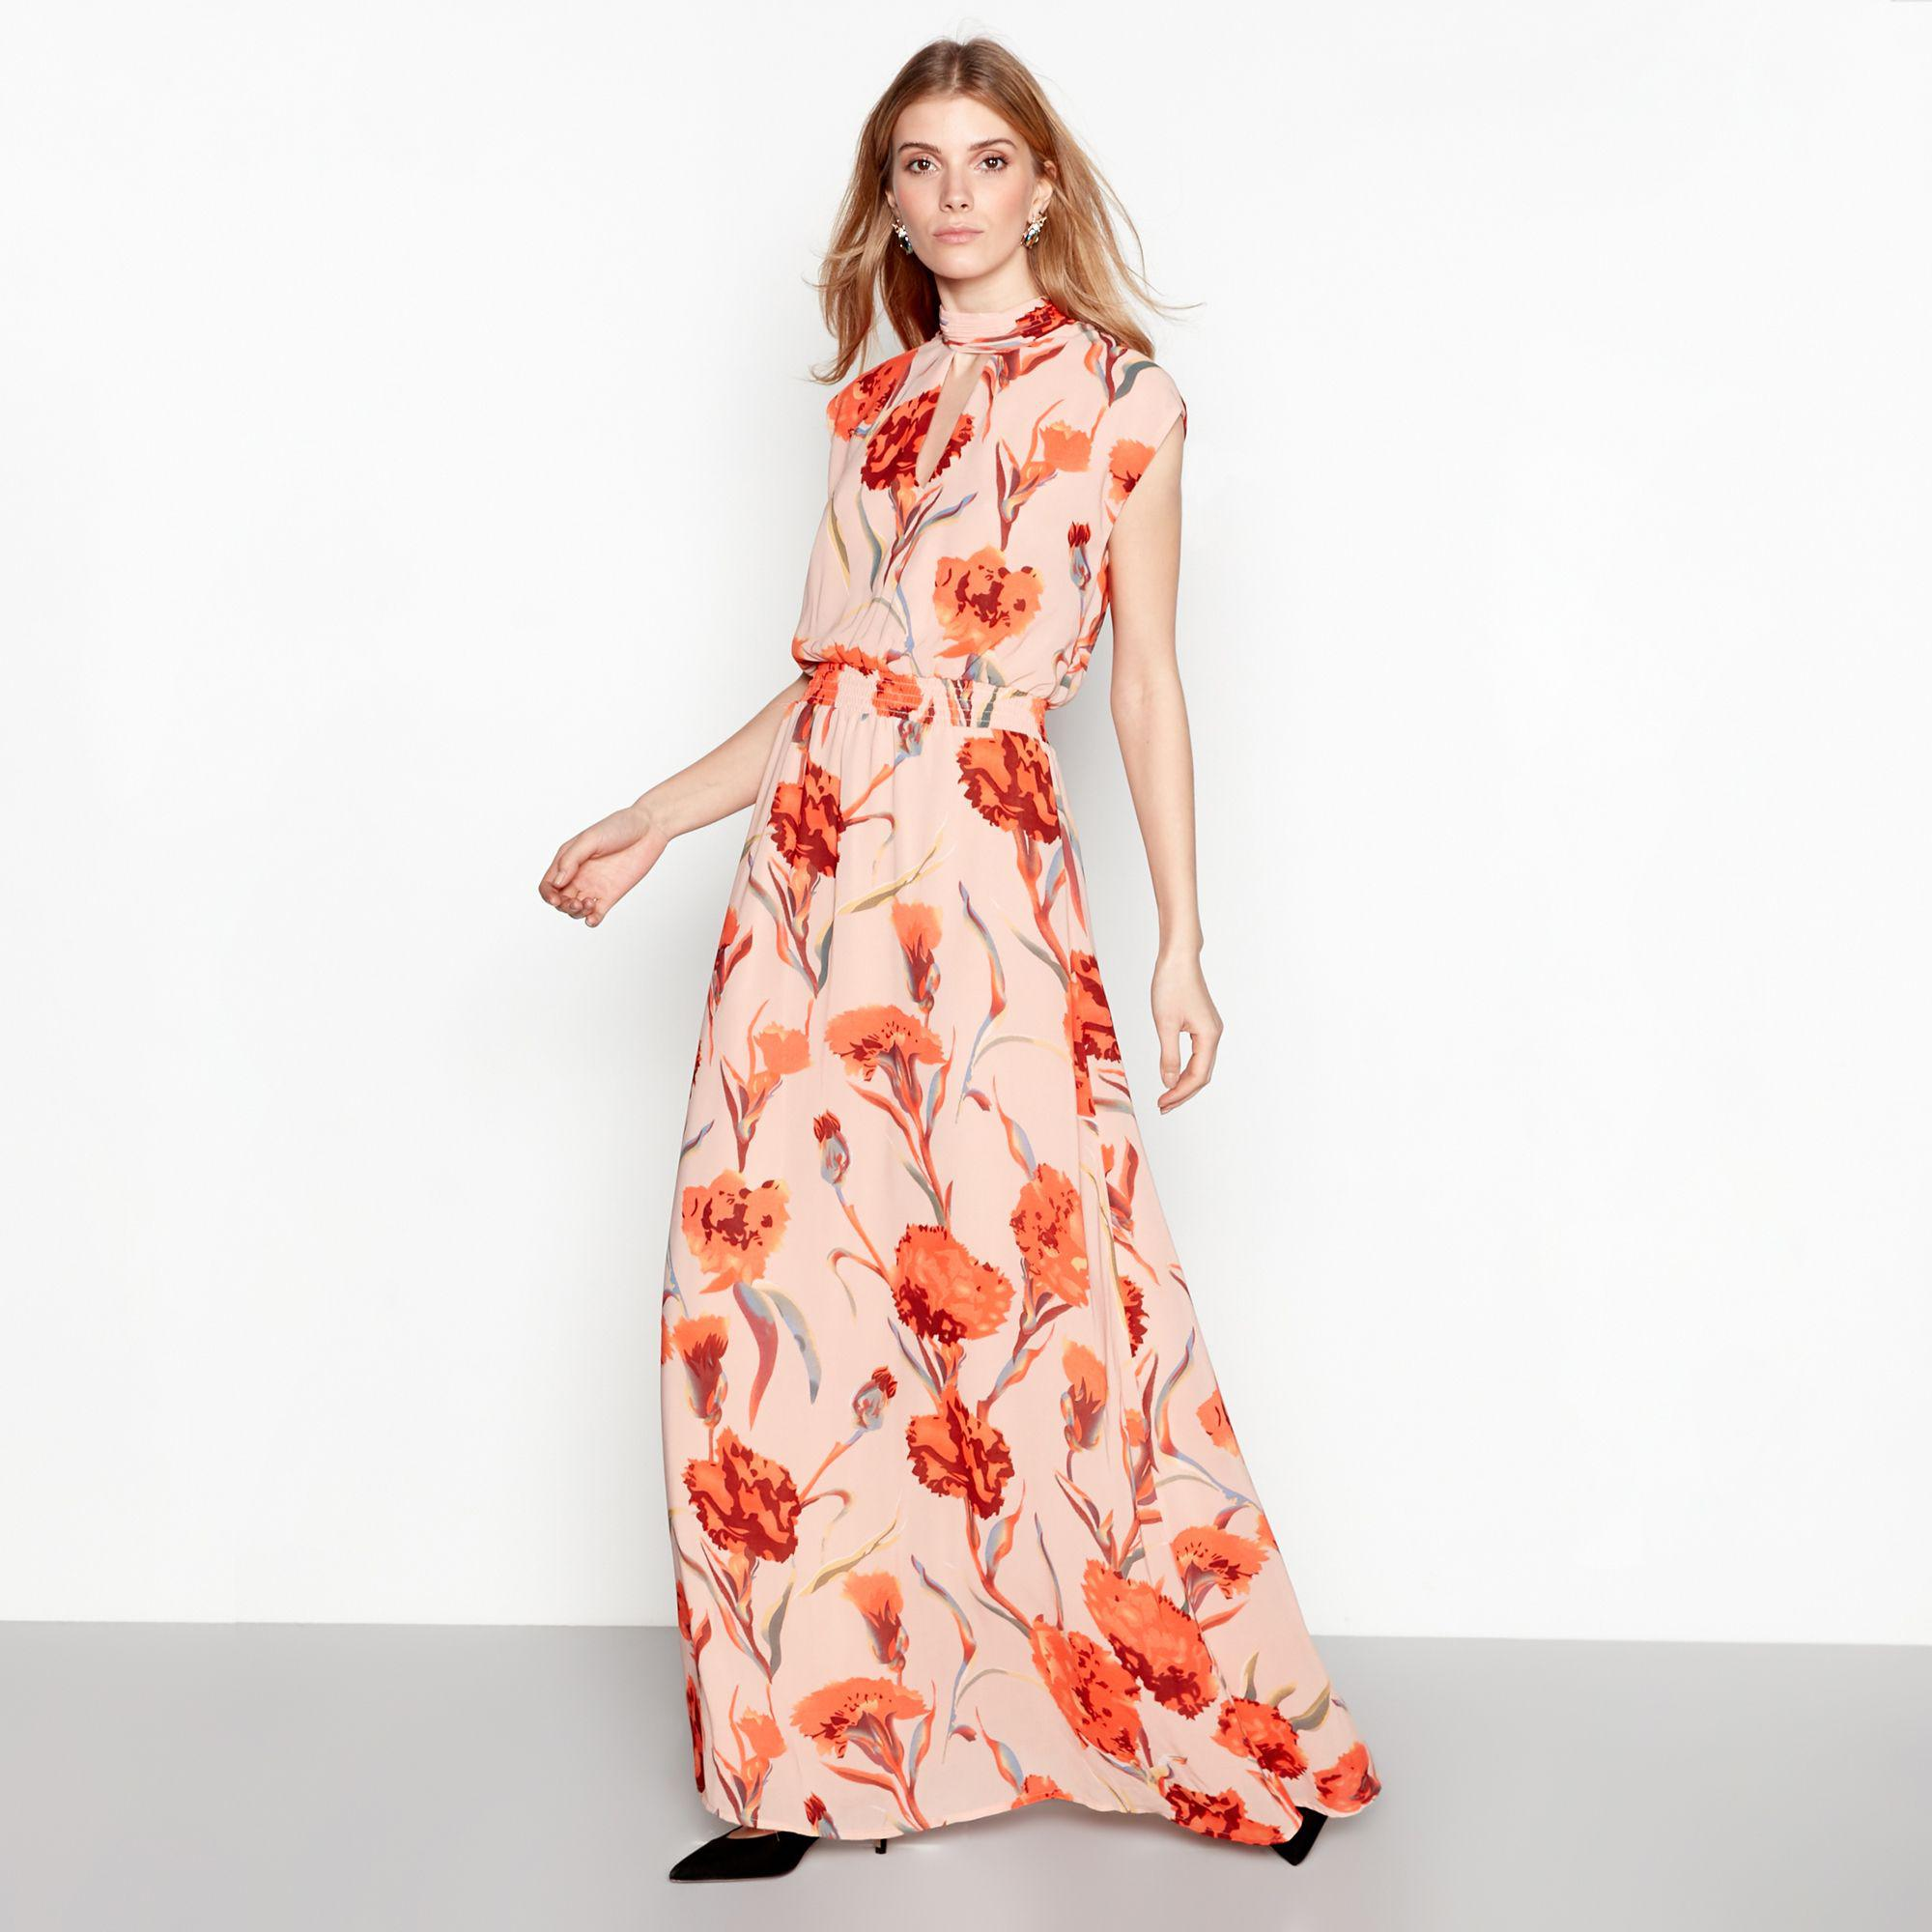 ad58dcef371d5 Y.A.S Rose Floral Print Sleeveless High Neck Maxi Dress in Pink - Lyst